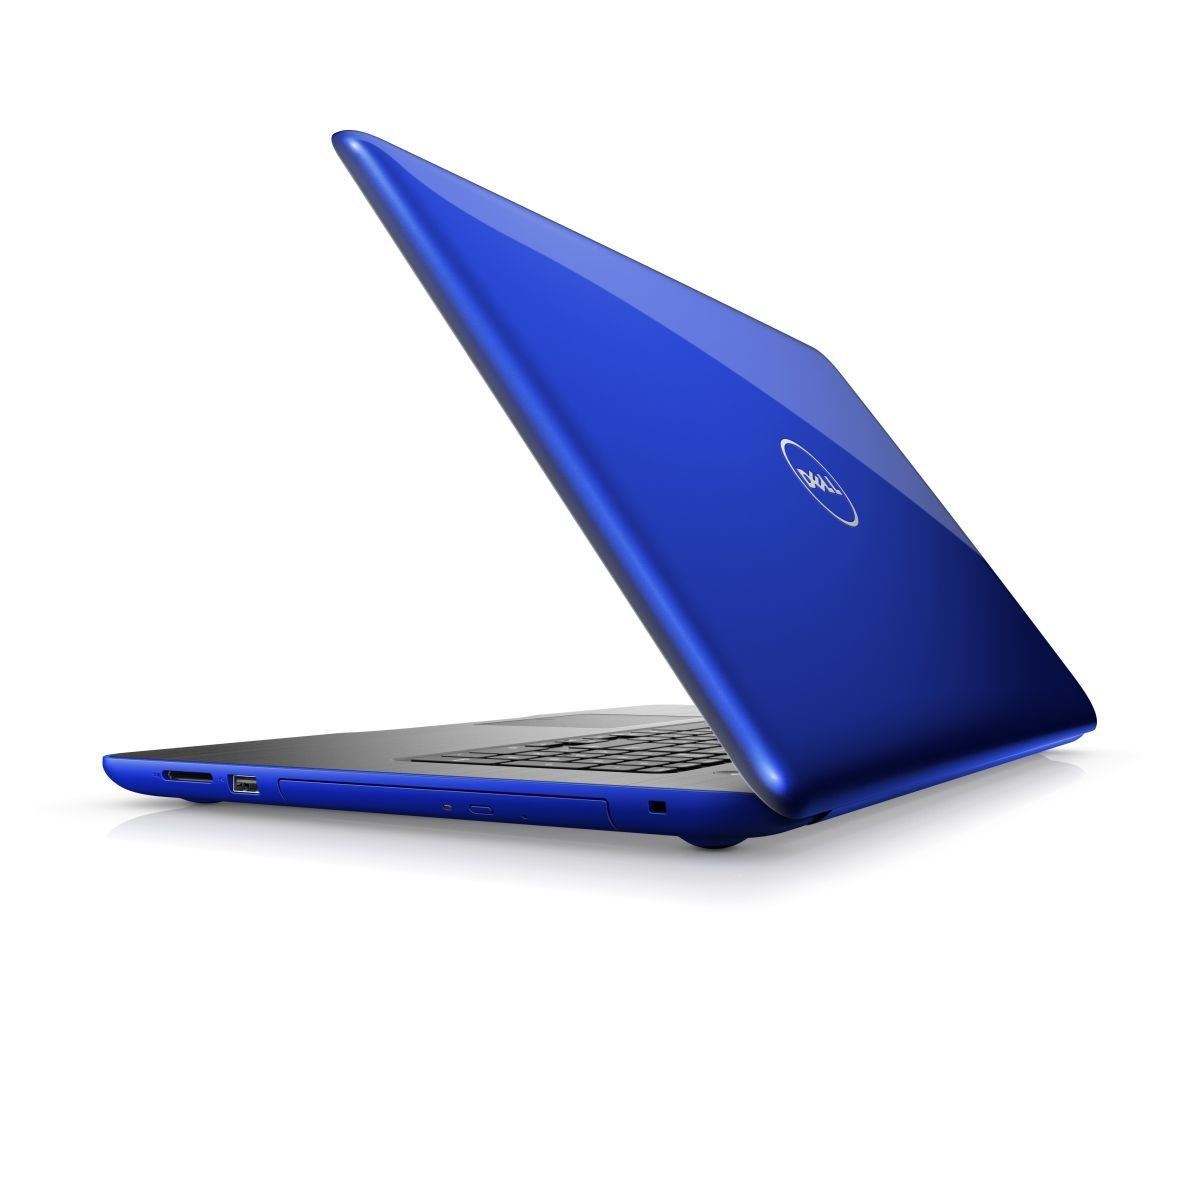 Inspiron 17 5000 Series Notebook